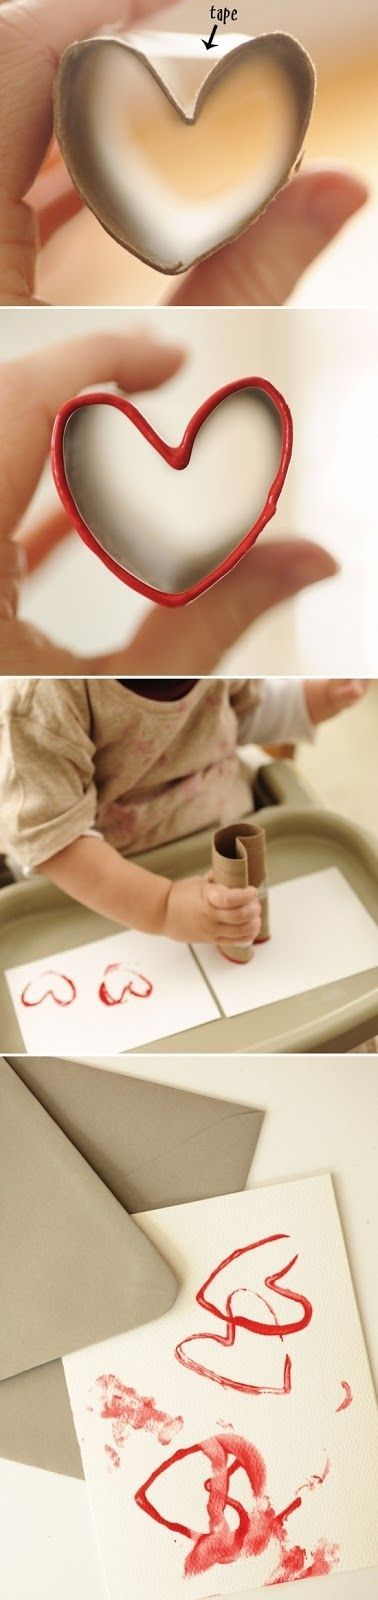 Toilet Paper Roll Stamps - http://diyideashome.com/2013/08/toilet-paper-roll-stamps/